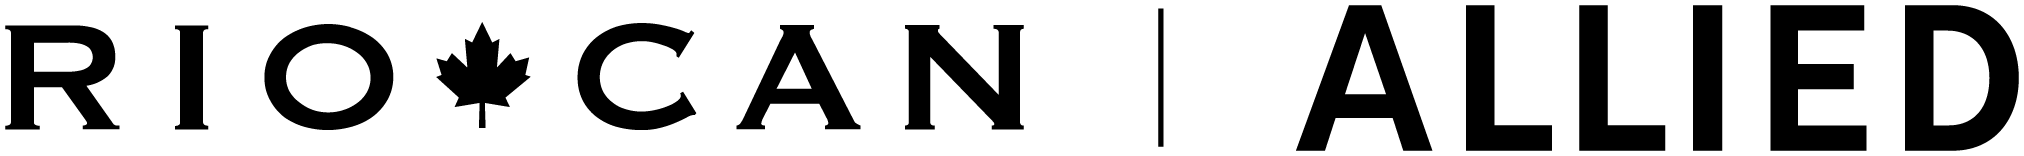 Riocan and Allied logo